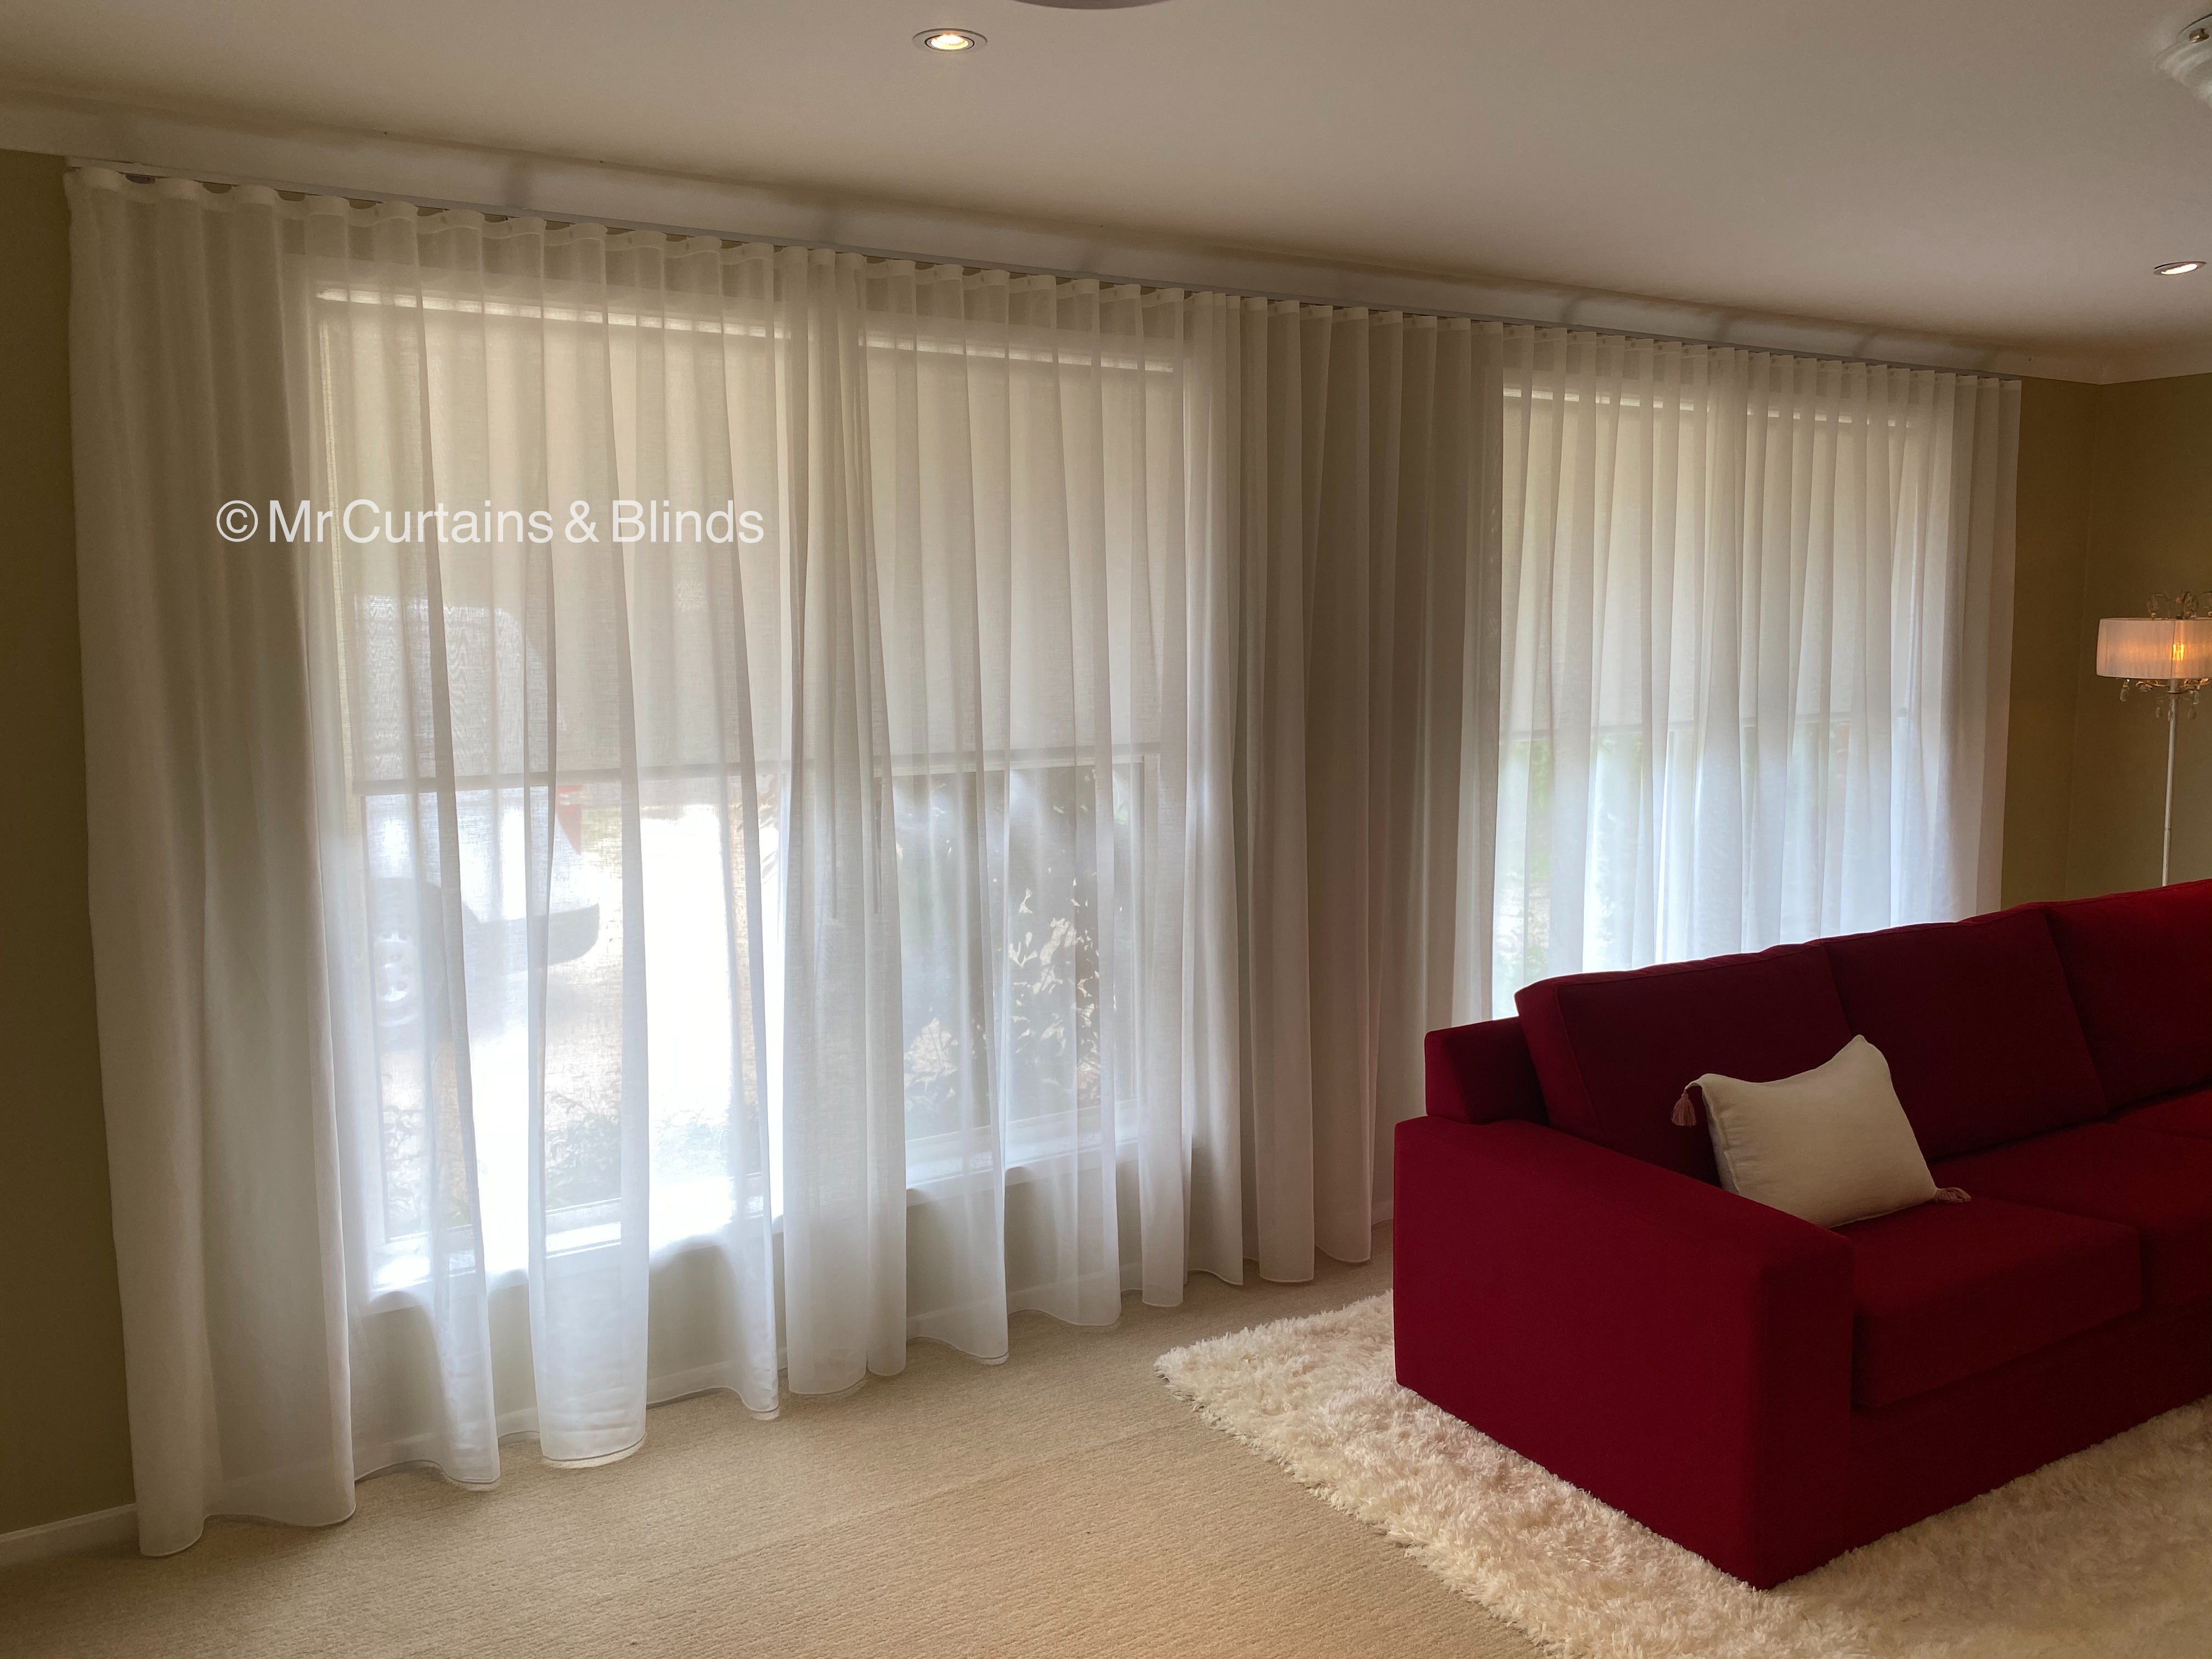 Sfold Seattle Sheer Curtains and Screen Blinds Mr Curtains and Blinds Central Coast